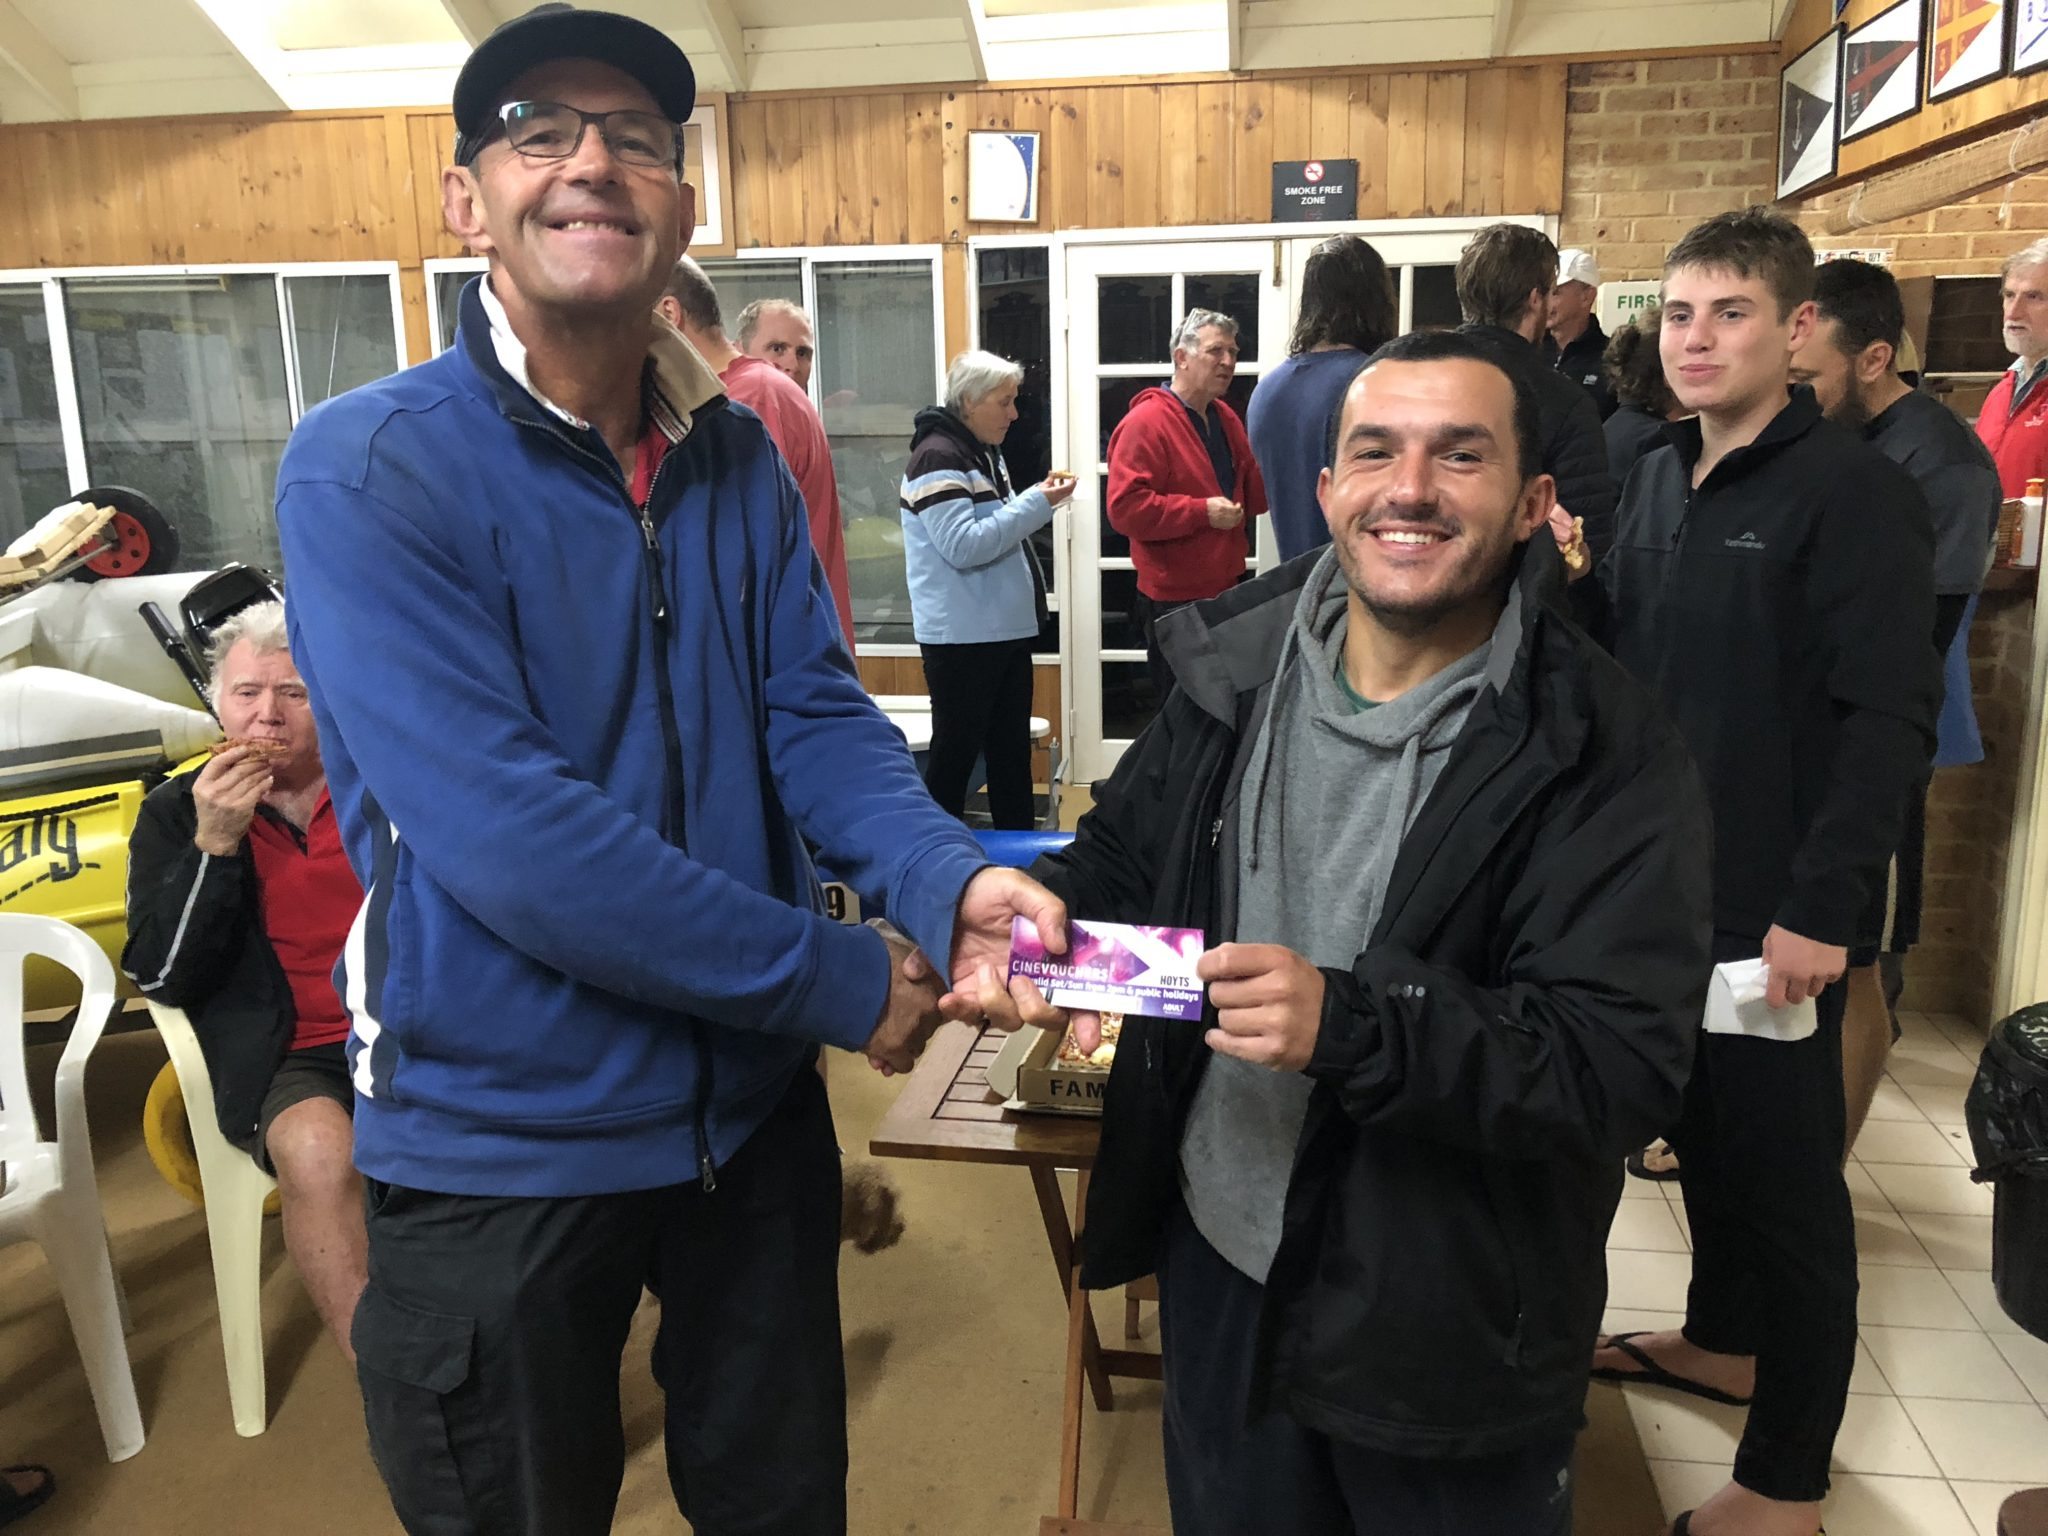 Tues 3rd July 2018 : Tonight's photo shows Doug Hodson presenting Jose Costa with a movie voucher.